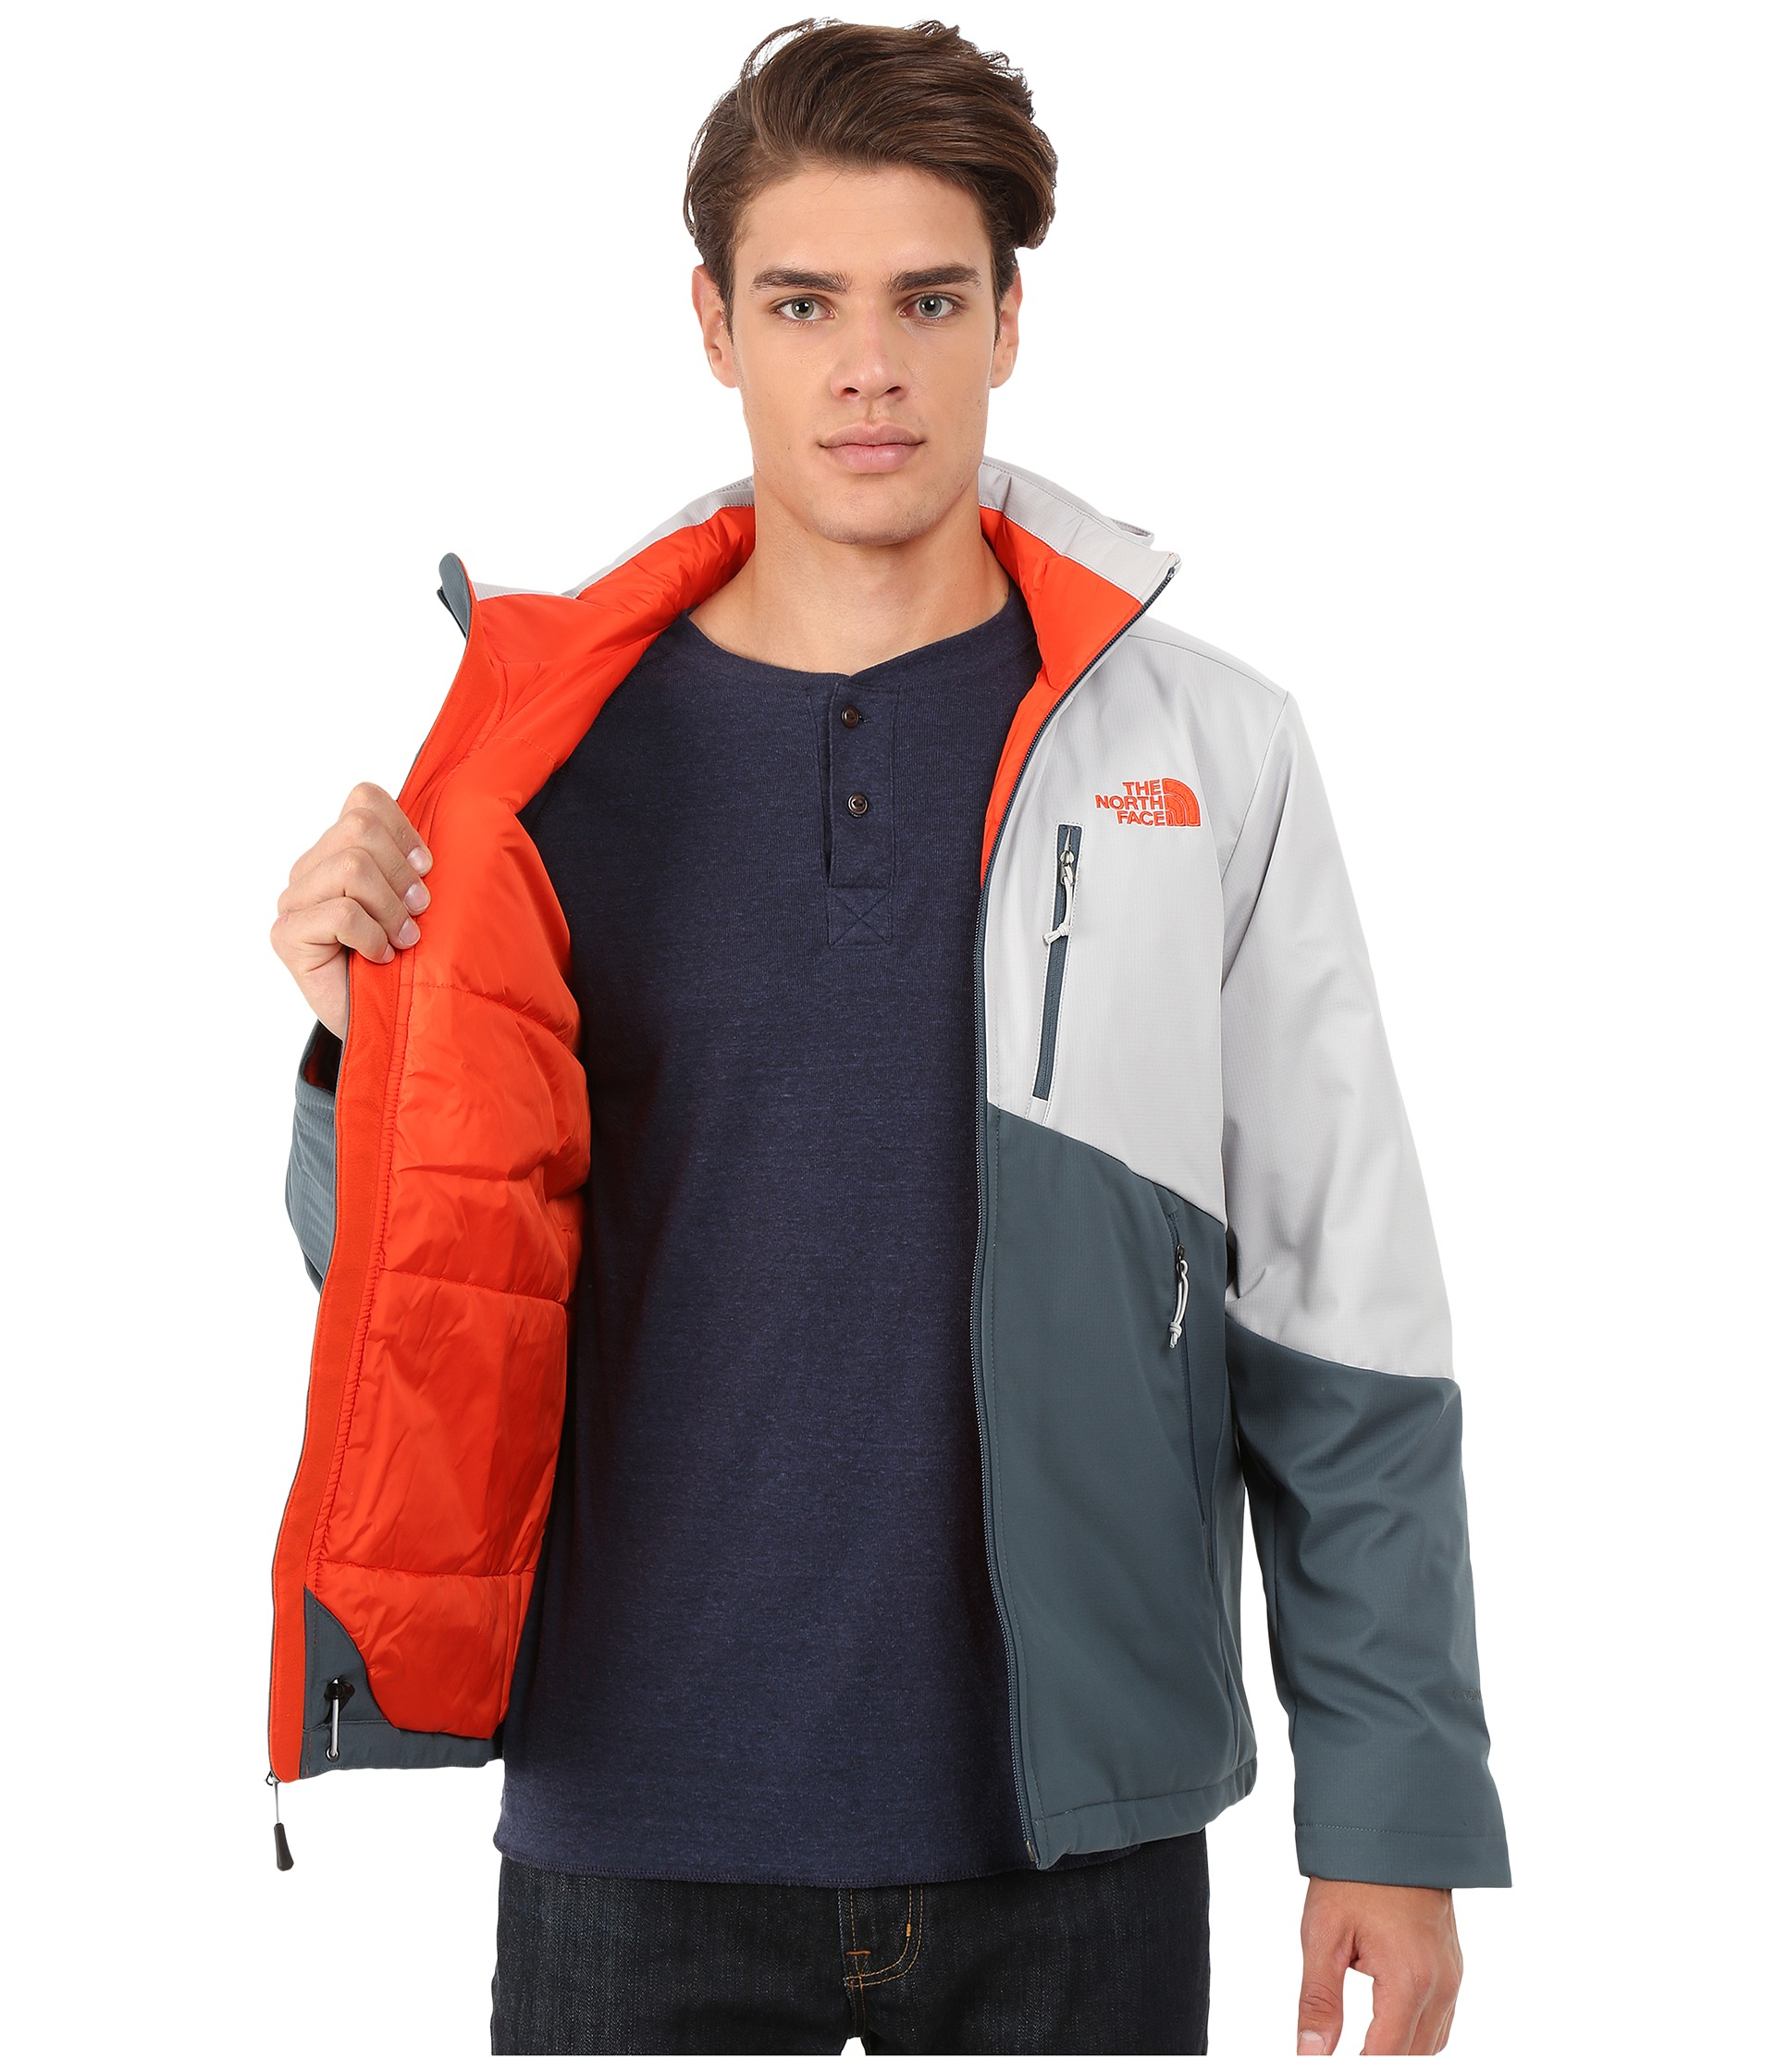 68355fdc9 The North Face Gray Apex Elevation Jacket for men